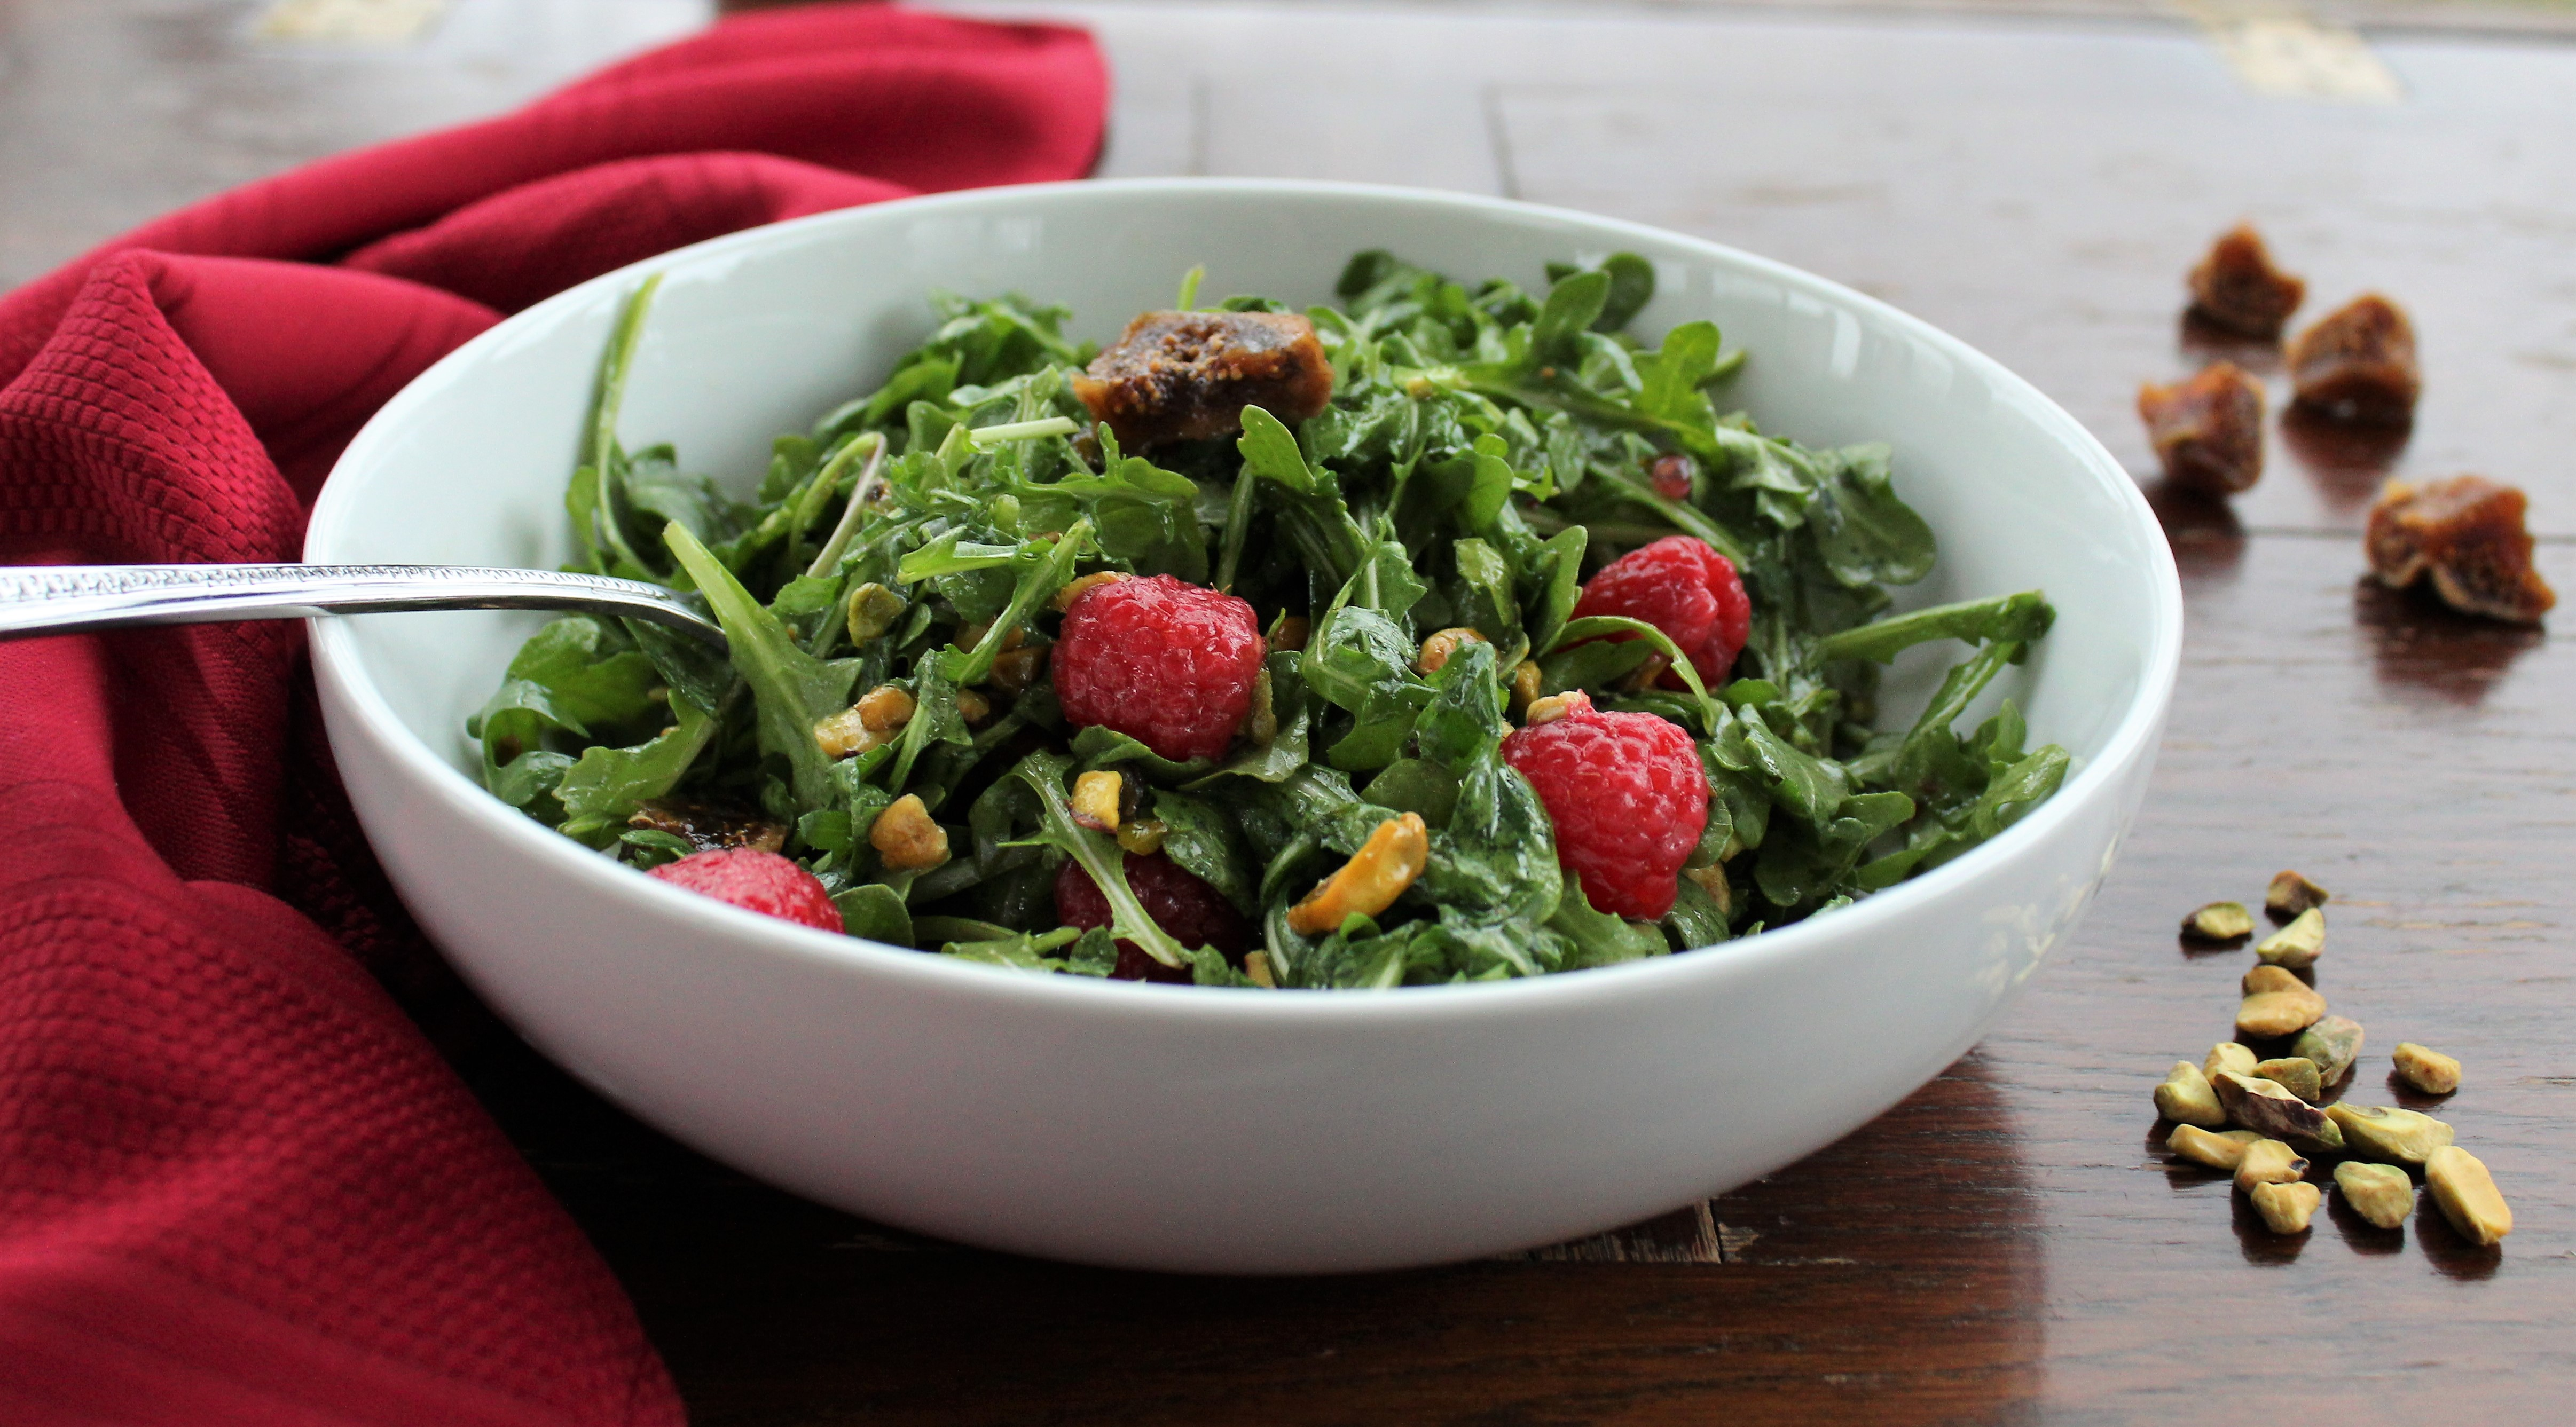 Arugula Salad with Raspberries, Figs, and Pistachios 1